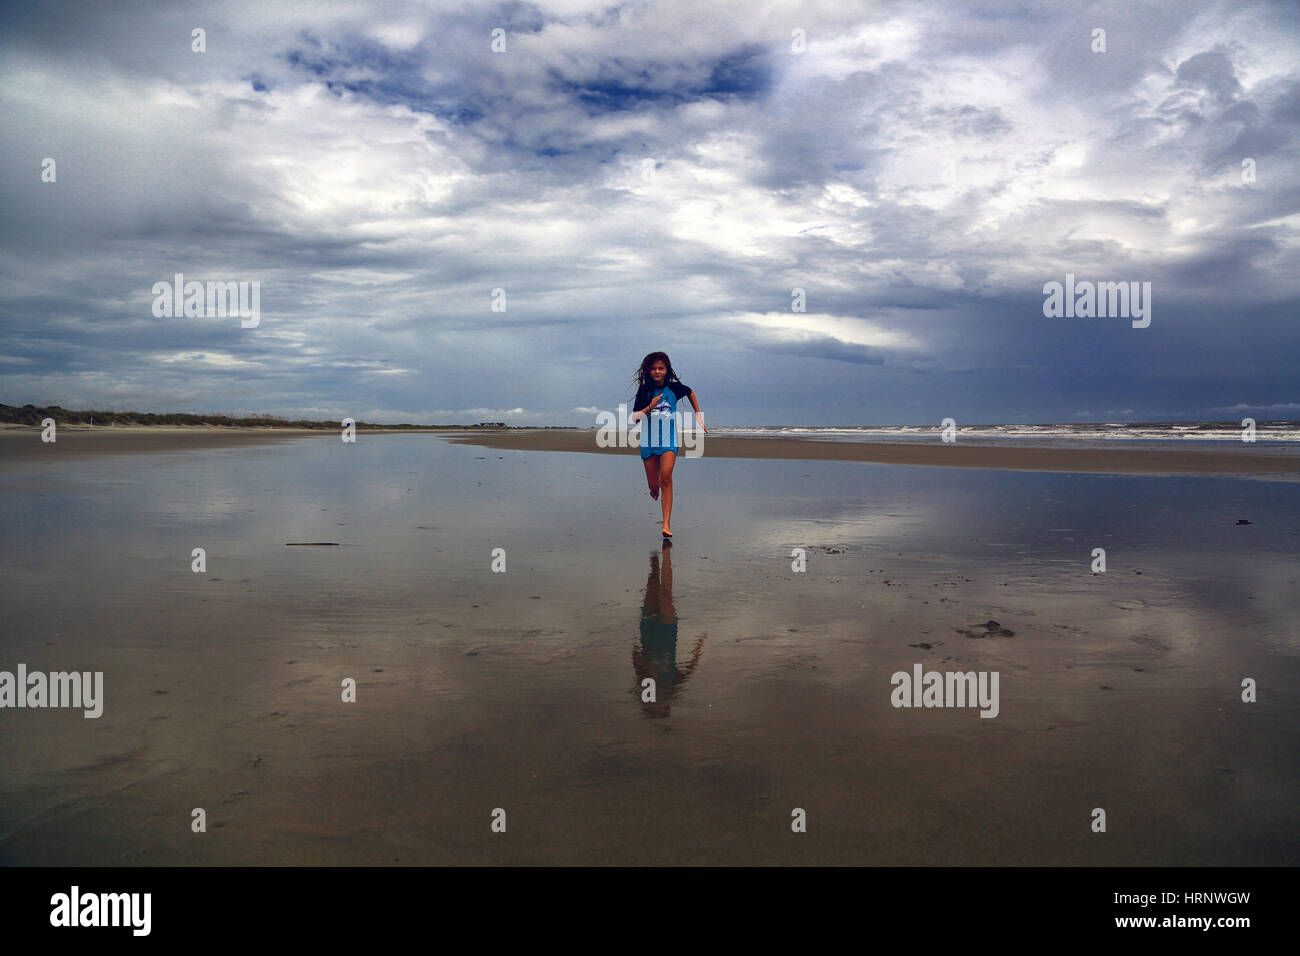 A tween girl wearing a bathing suit runs on the beach at low tide on Kiawah Island, South Carolina. A stormy sky - Stock Image